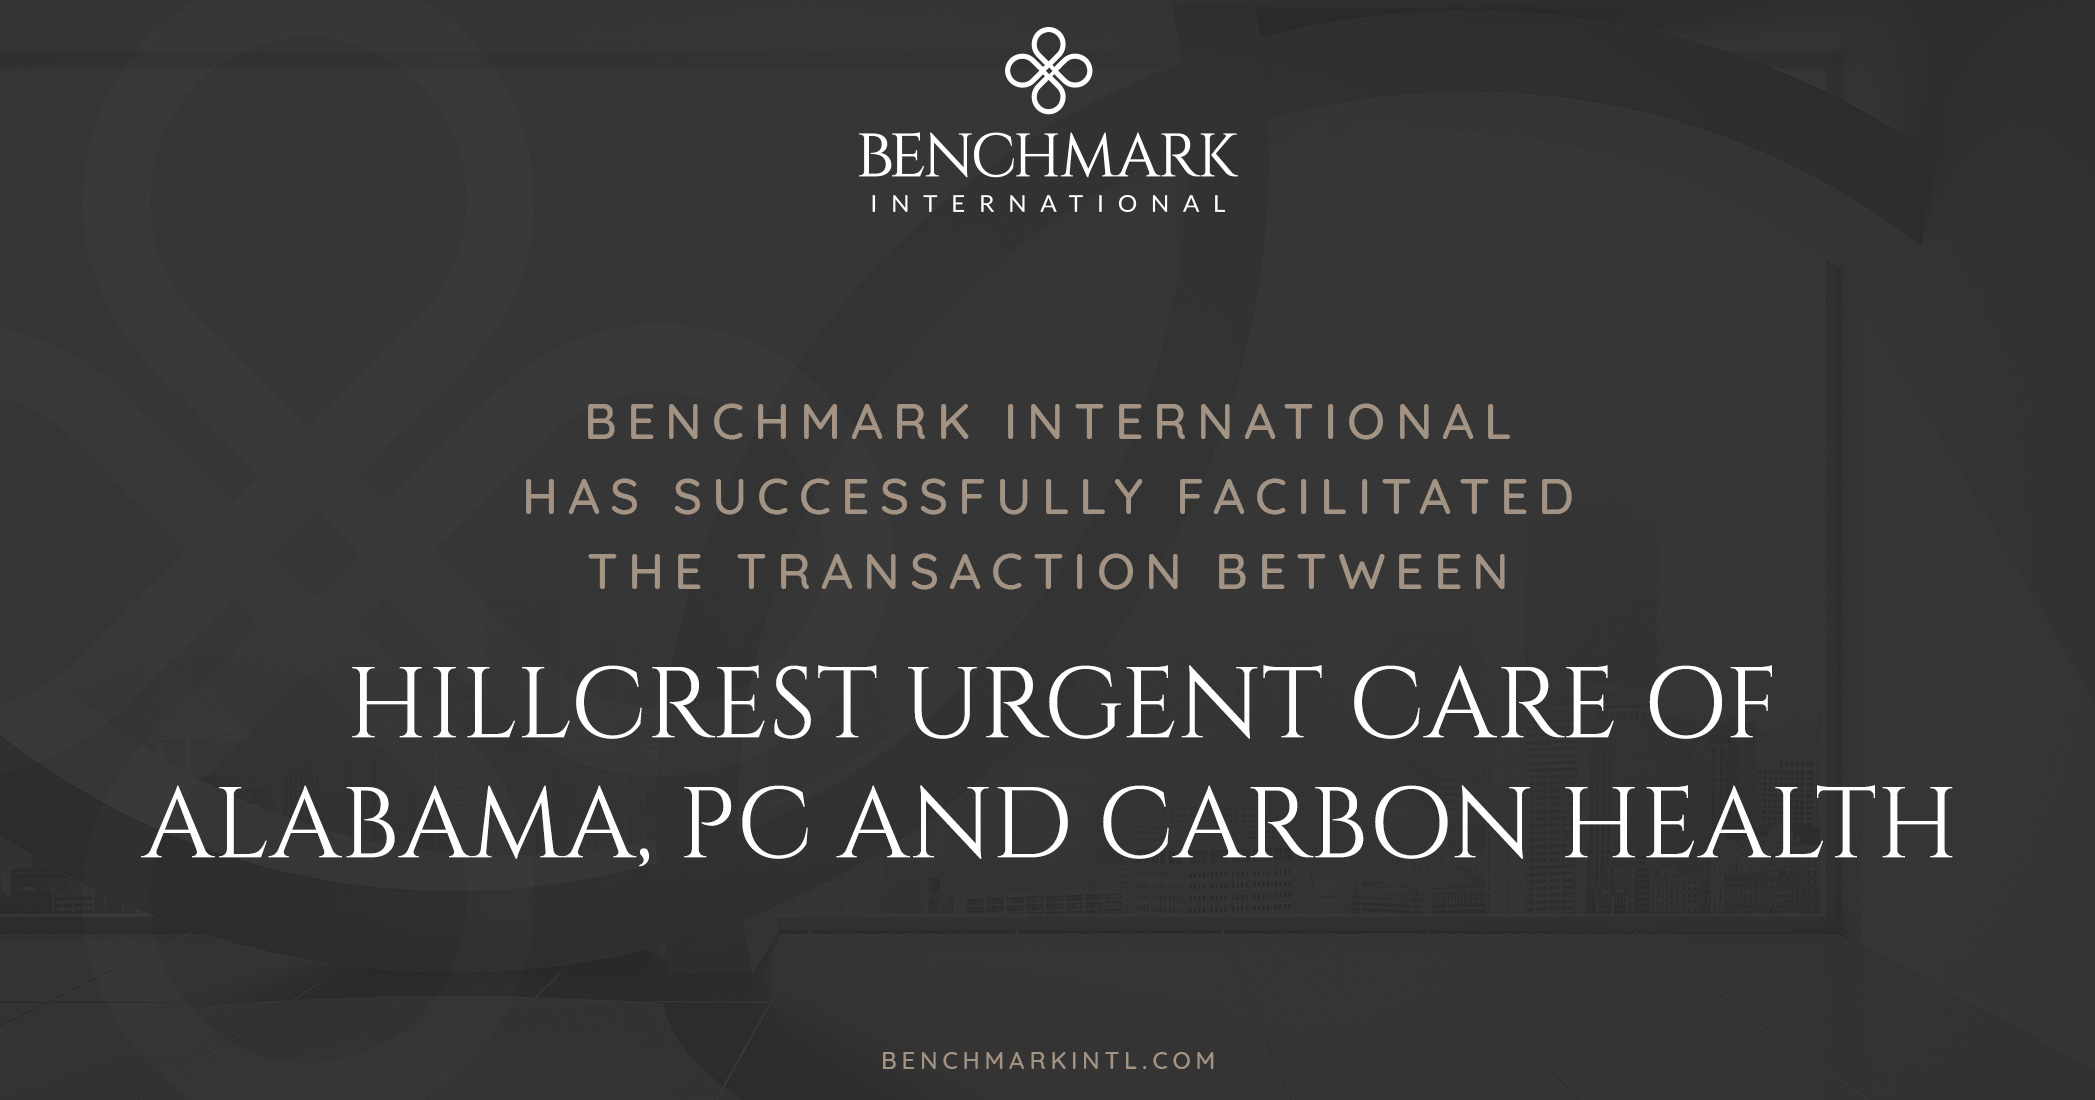 Benchmark International Successfully Facilitated the Transaction Between Hillcrest Urgent Care of Alabama, PC and Carbon Health